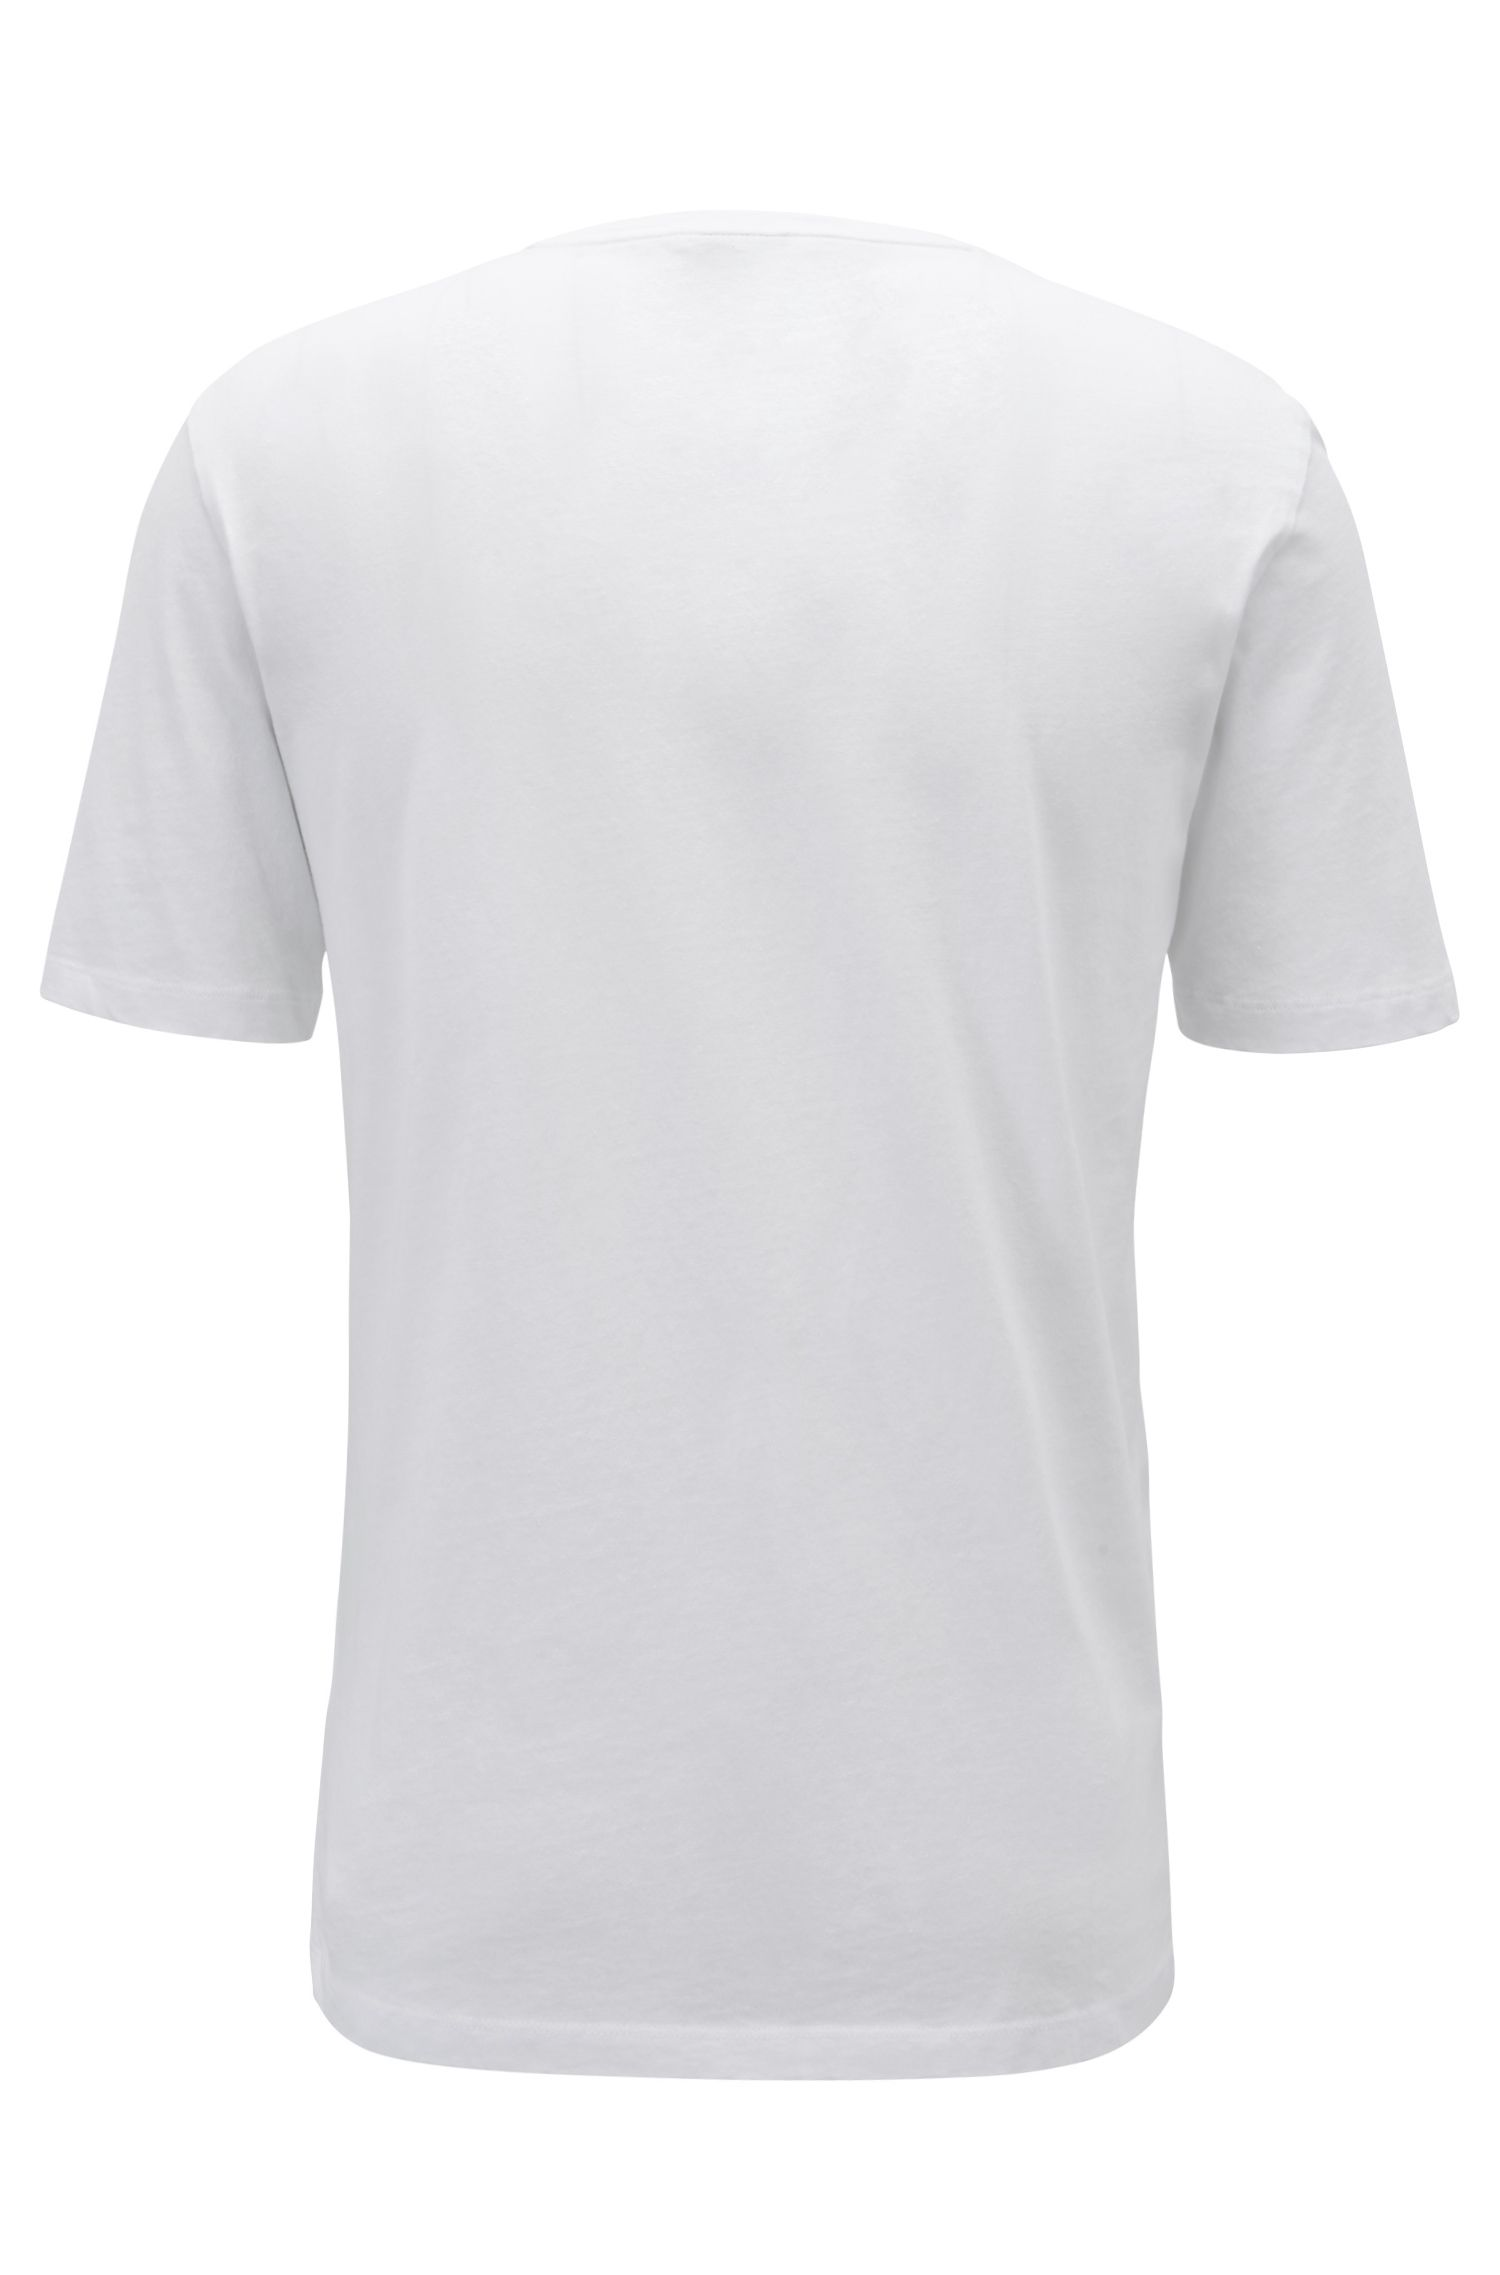 T-shirt Relaxed Fit à message, en jersey de coton recot²® éco-responsable, Blanc